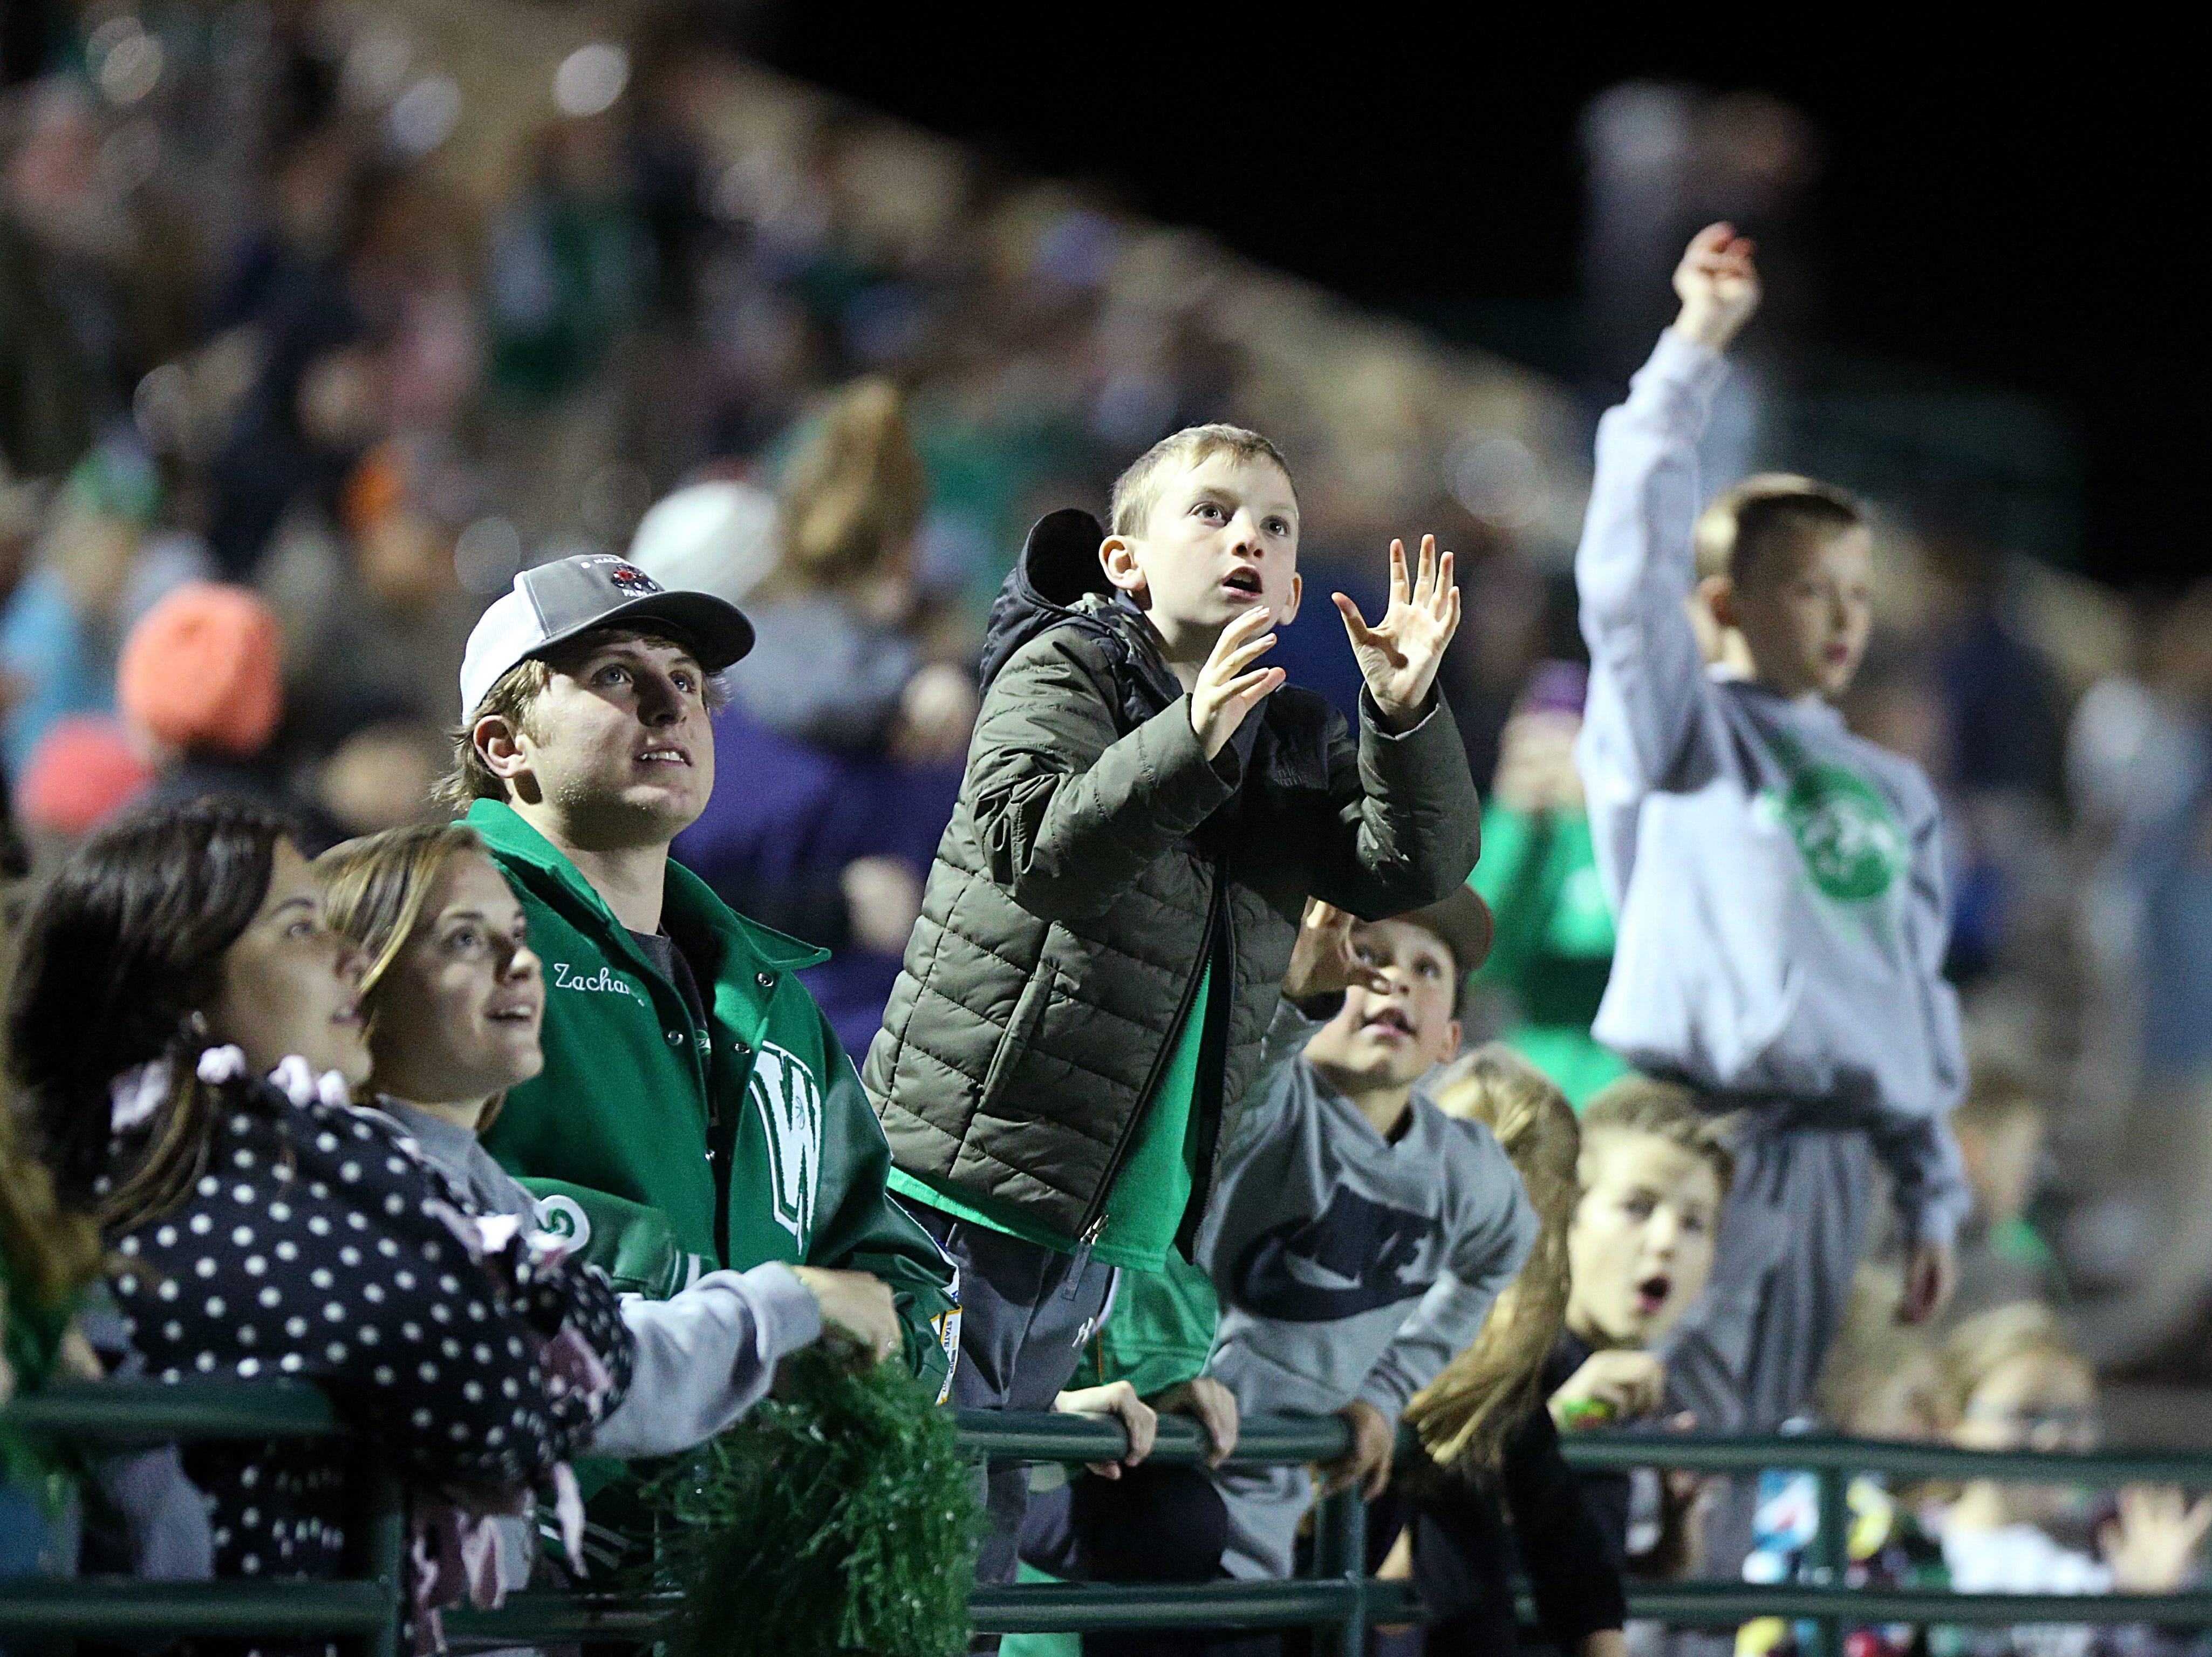 Wall fans prepare to grab T-shirts thrown into the crowd by the cheerleaders Friday, Nov. 30, 2018, at the game between the Wall Hawks and the Brock Eagles at Shotwell Stadium in Abilene. Wall lost 13 to 35.